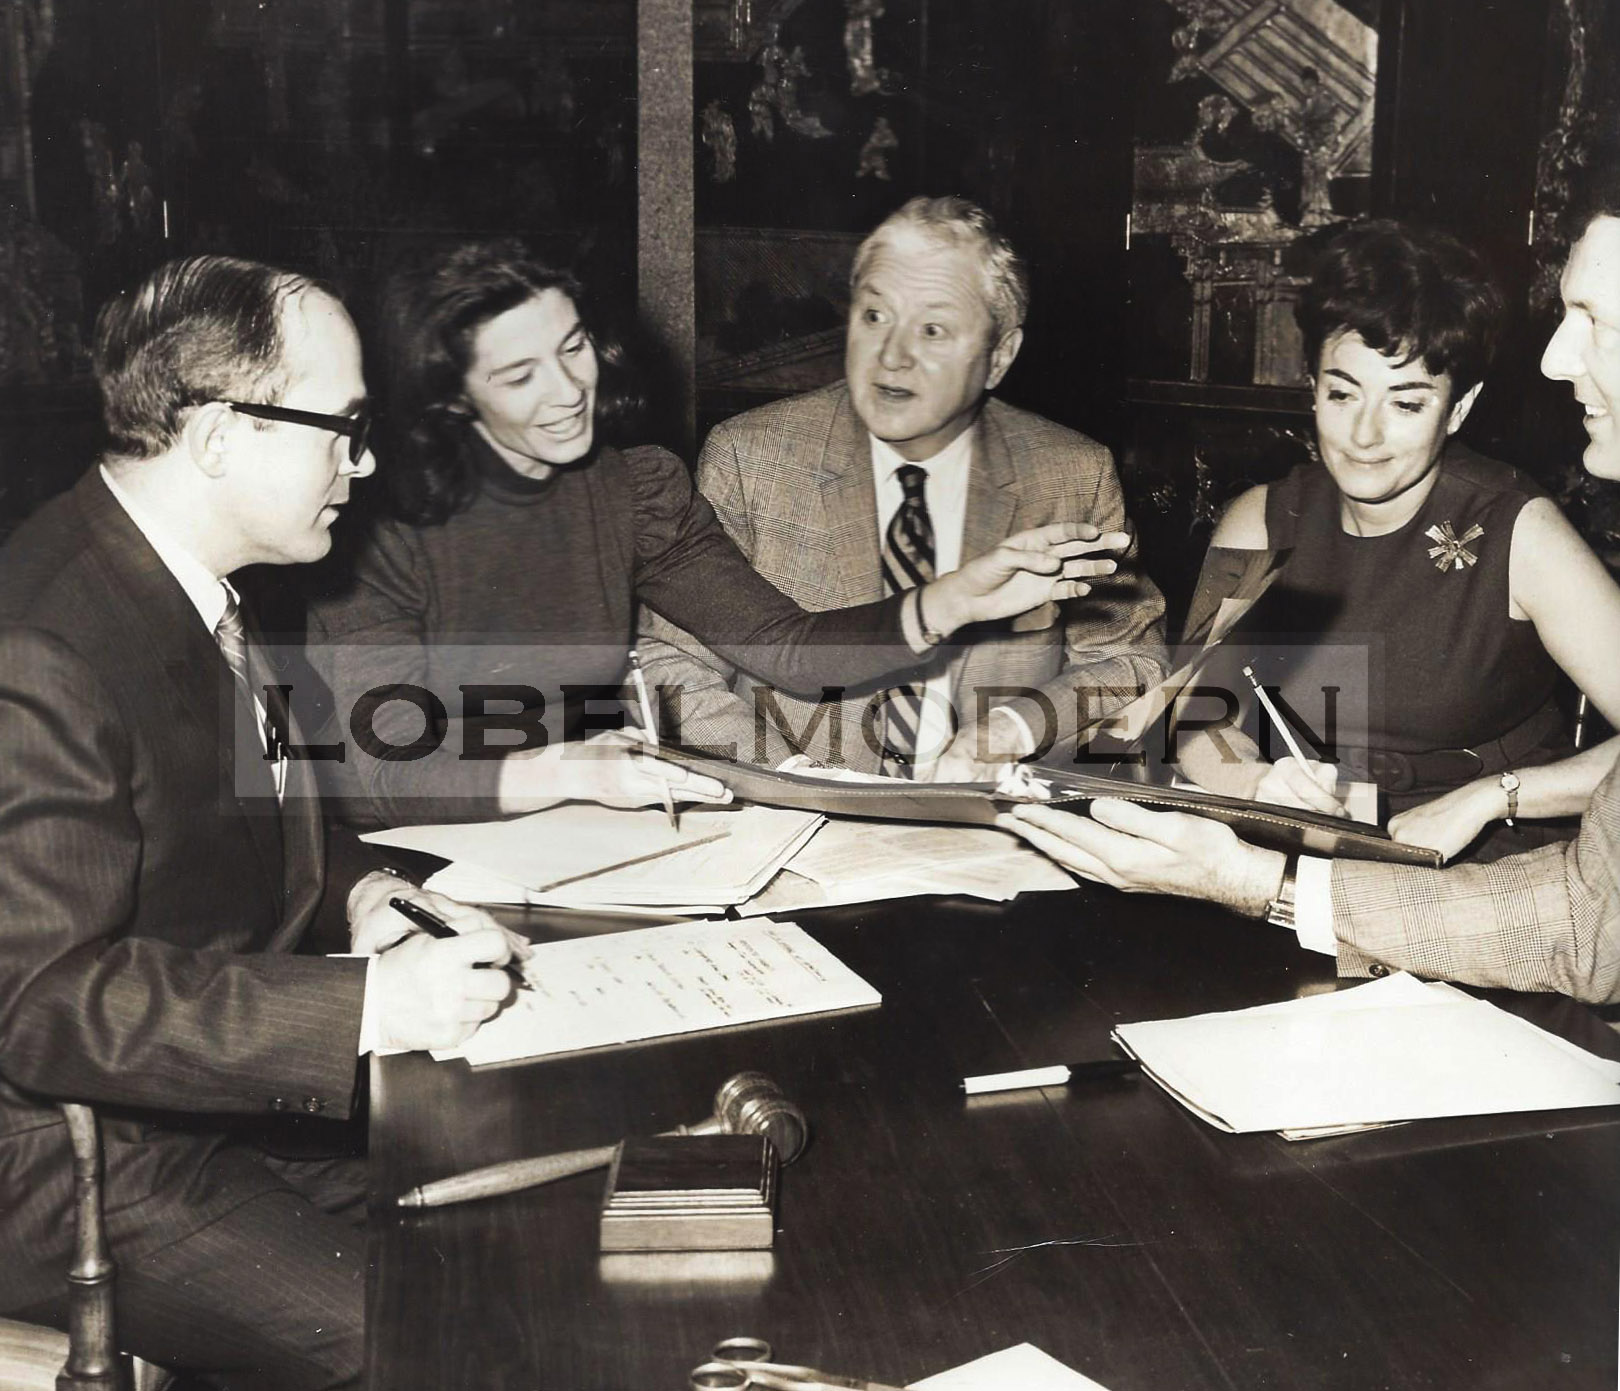 Photo from Wormley Archive at Lobel Modern